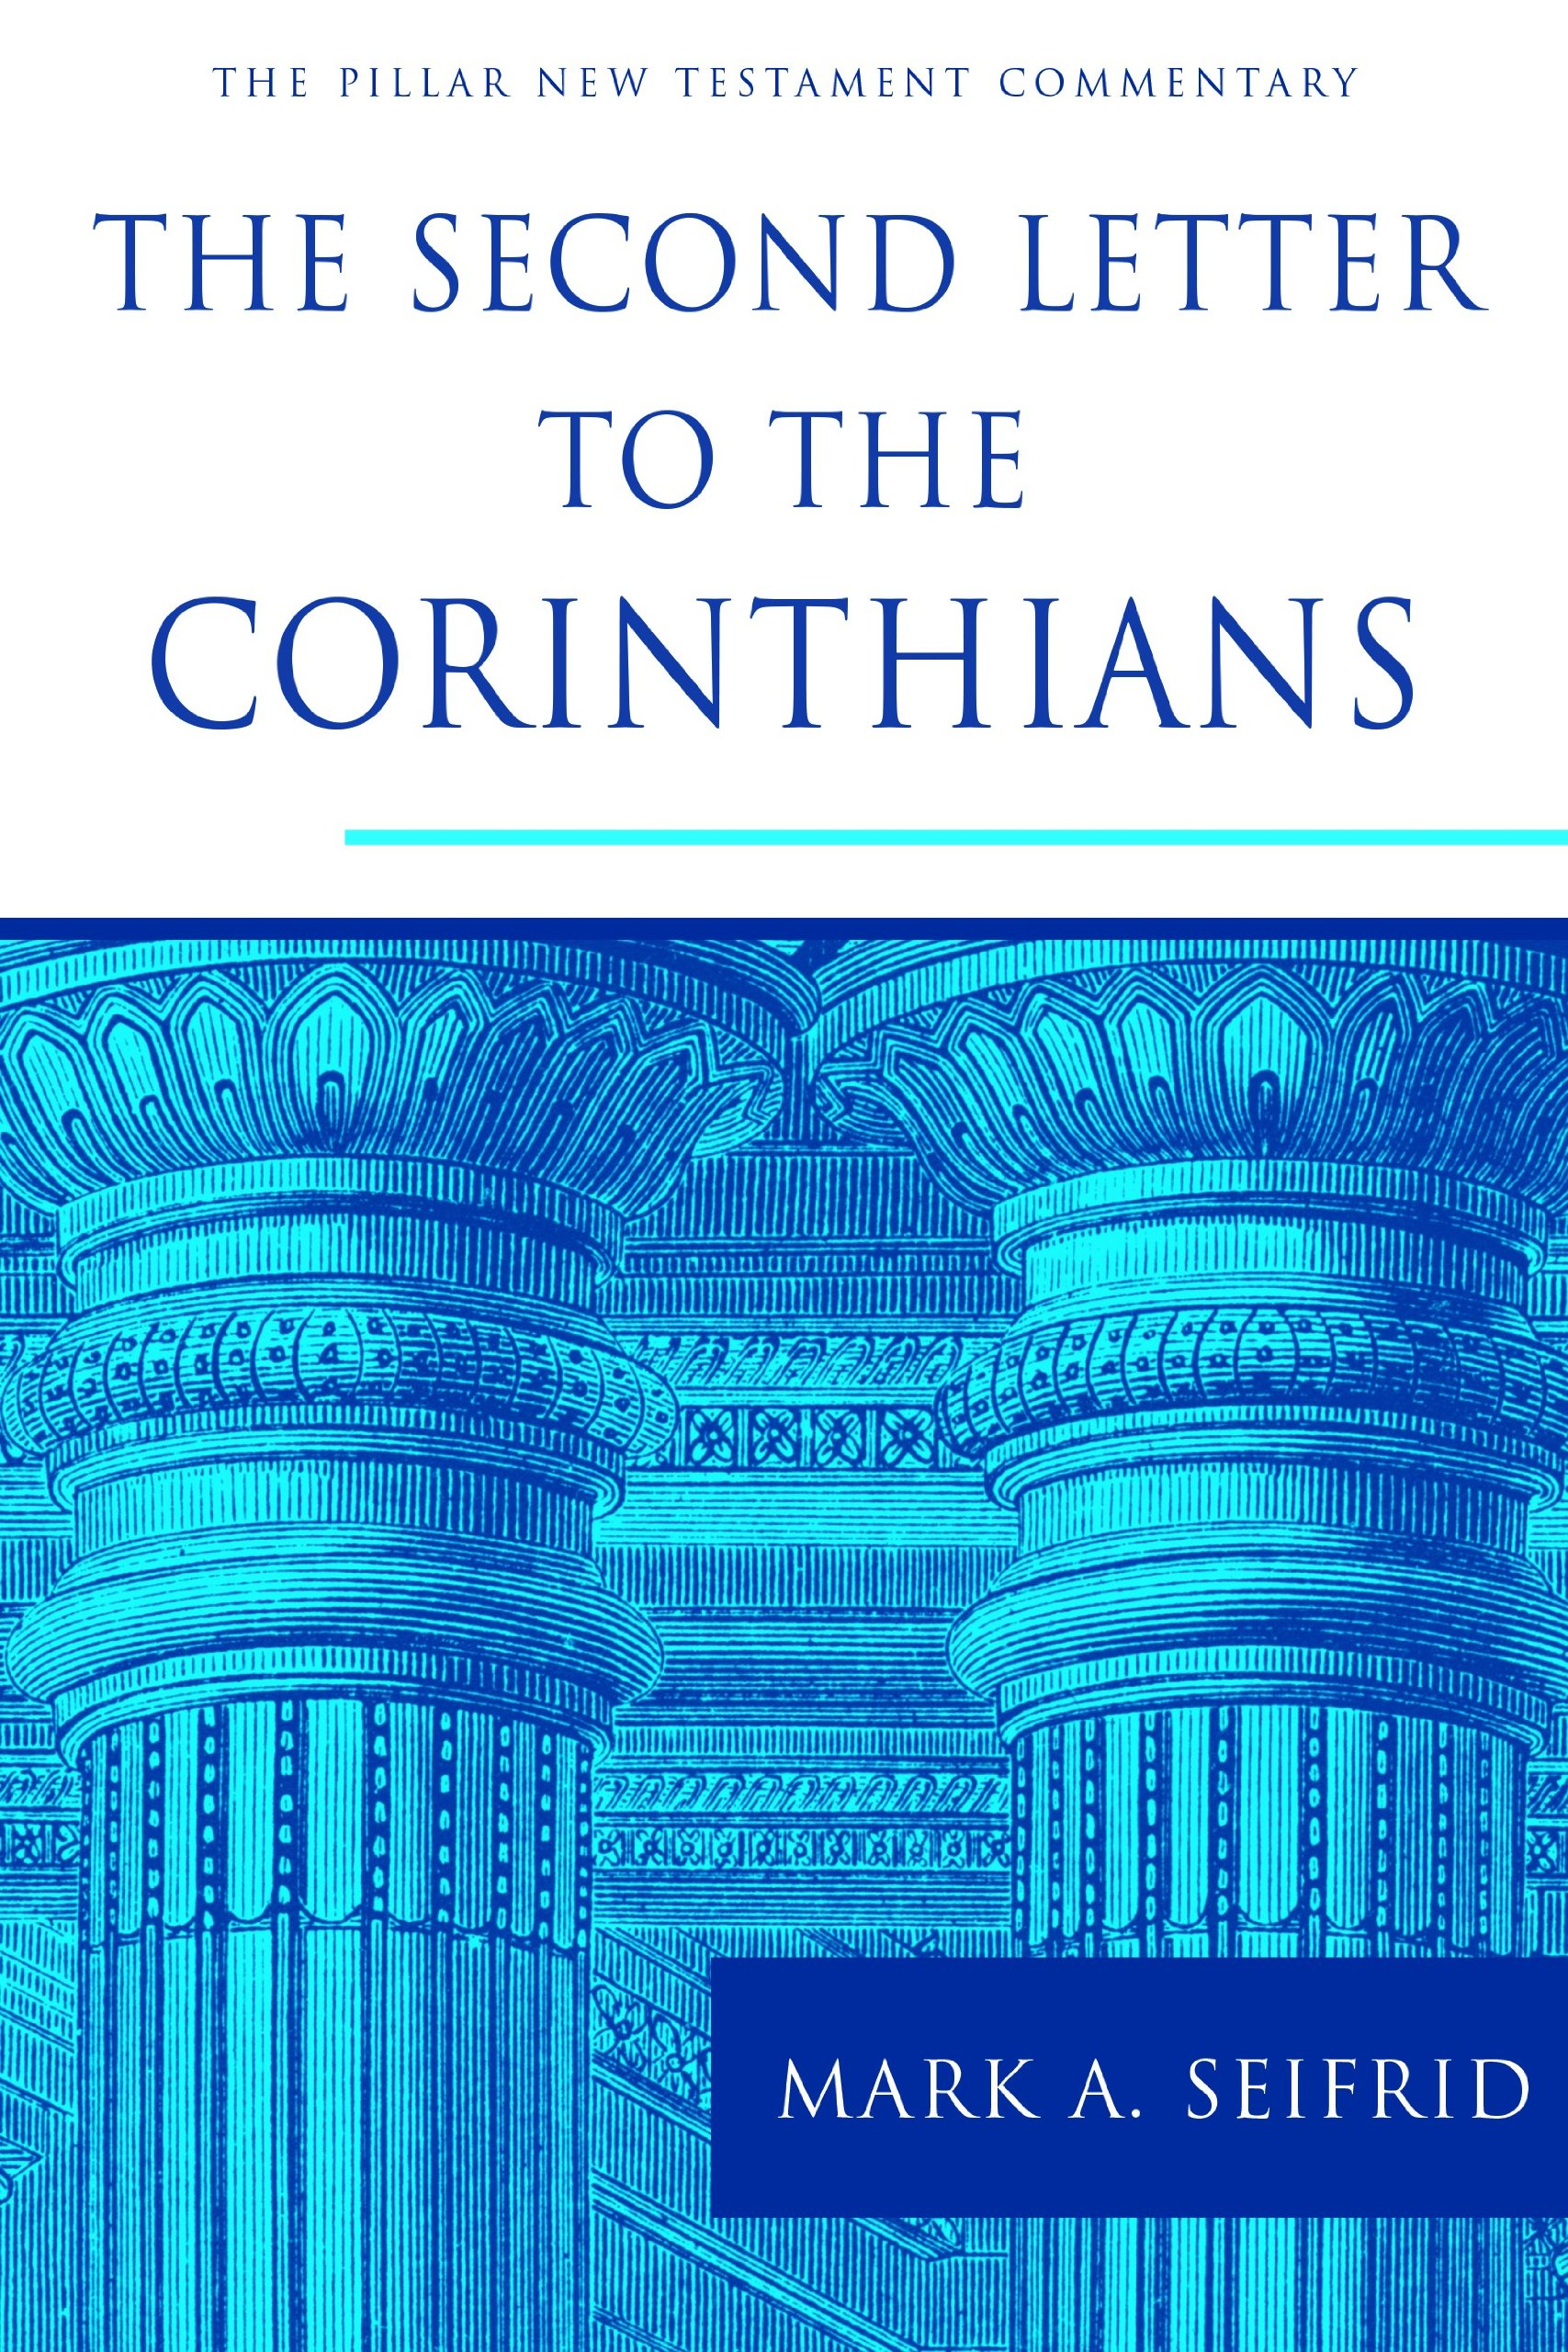 the second letter to the corinthians the pillar new testament commentary pntc mark a seifrid 9780802837394 amazoncom books